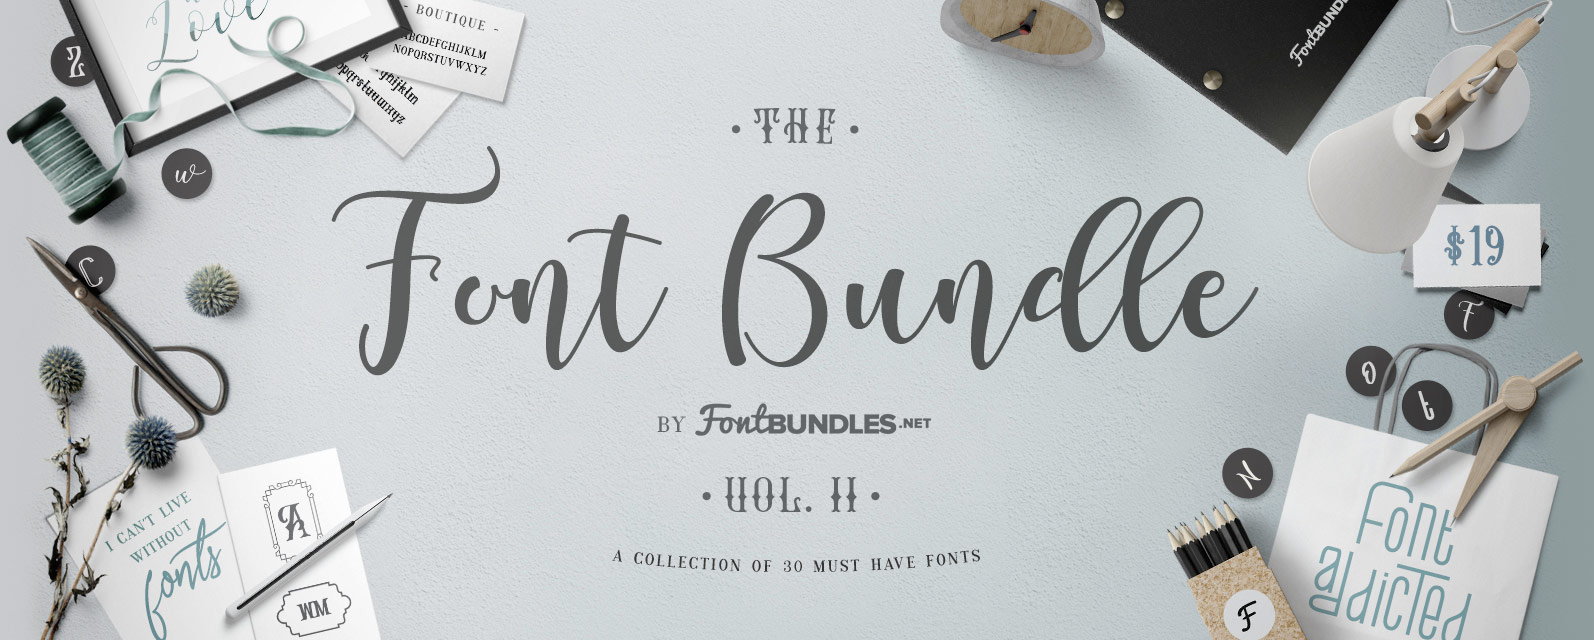 The Font Bundle Volume II Cover